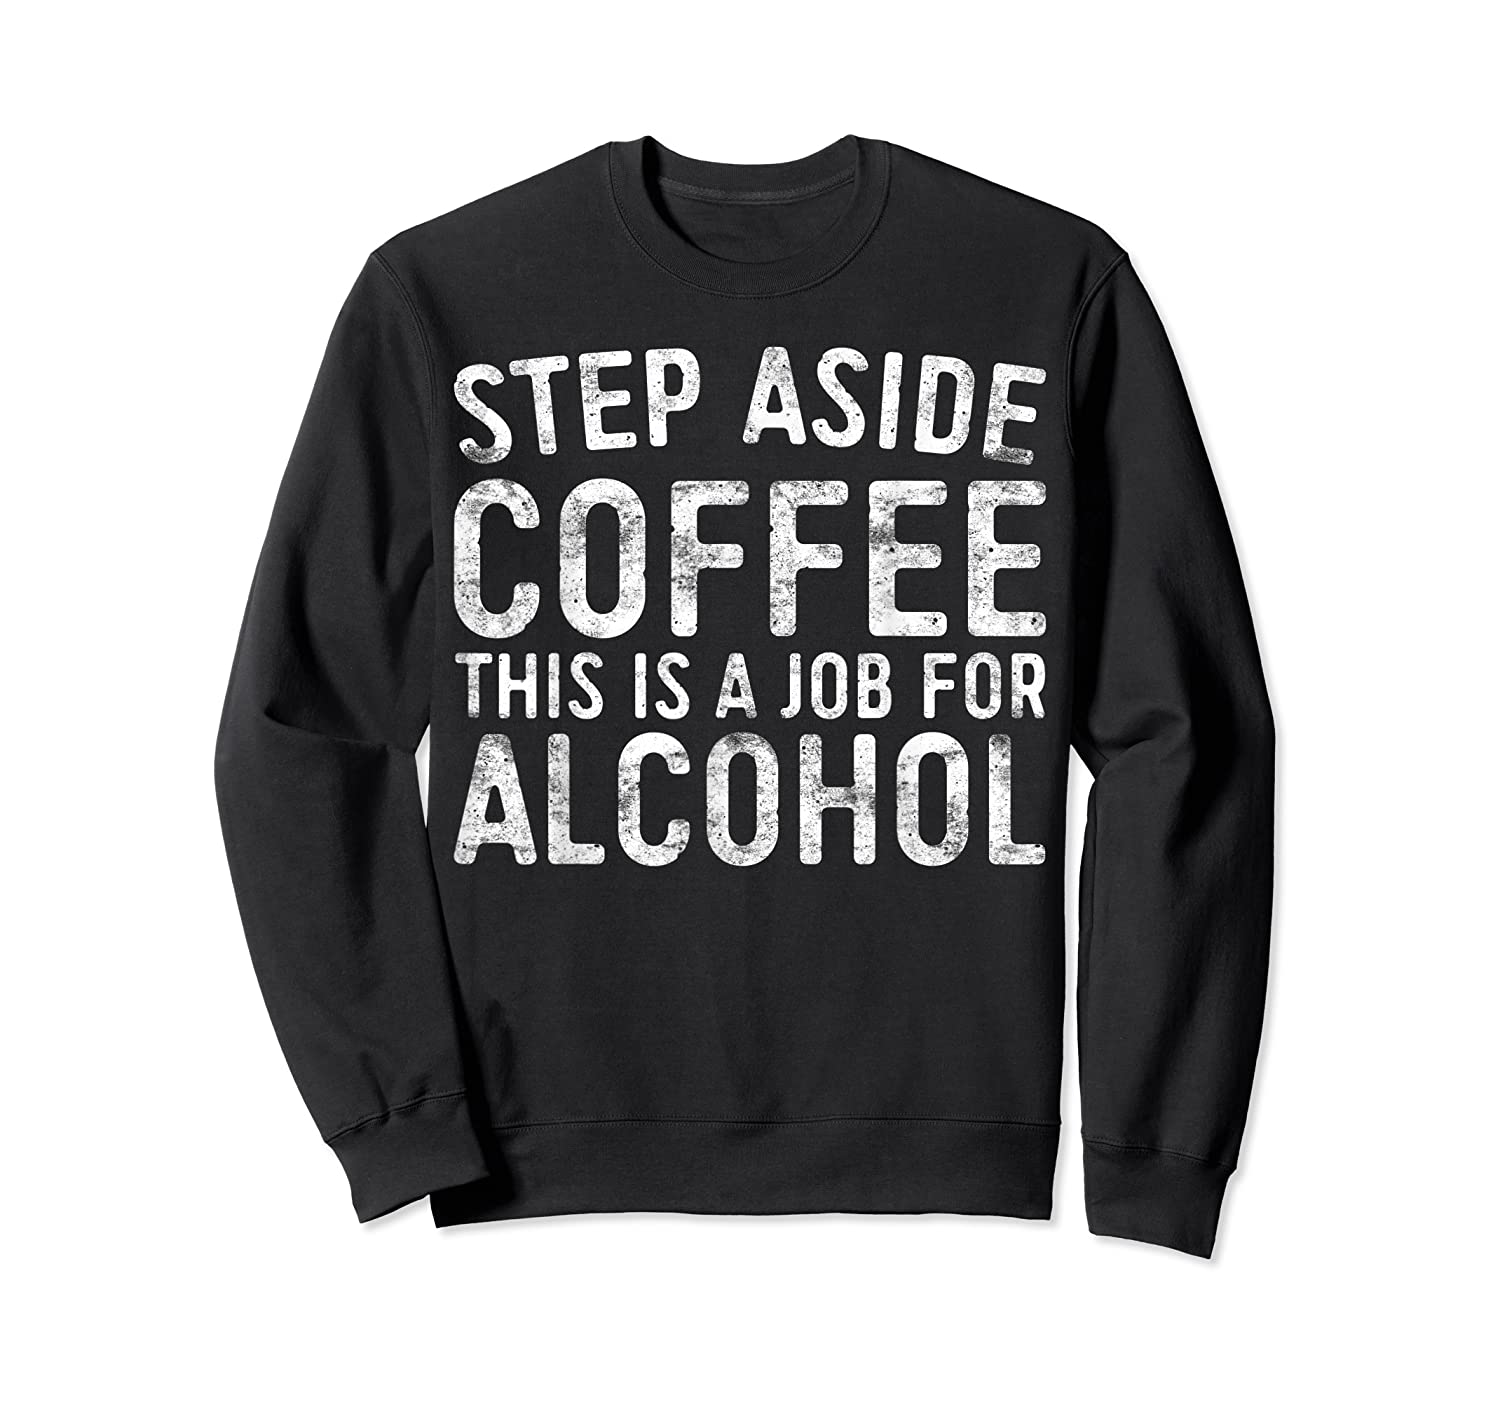 Step Aside Coffee This Is A Job For Alcohol T-shirt Drinking Crewneck Sweater